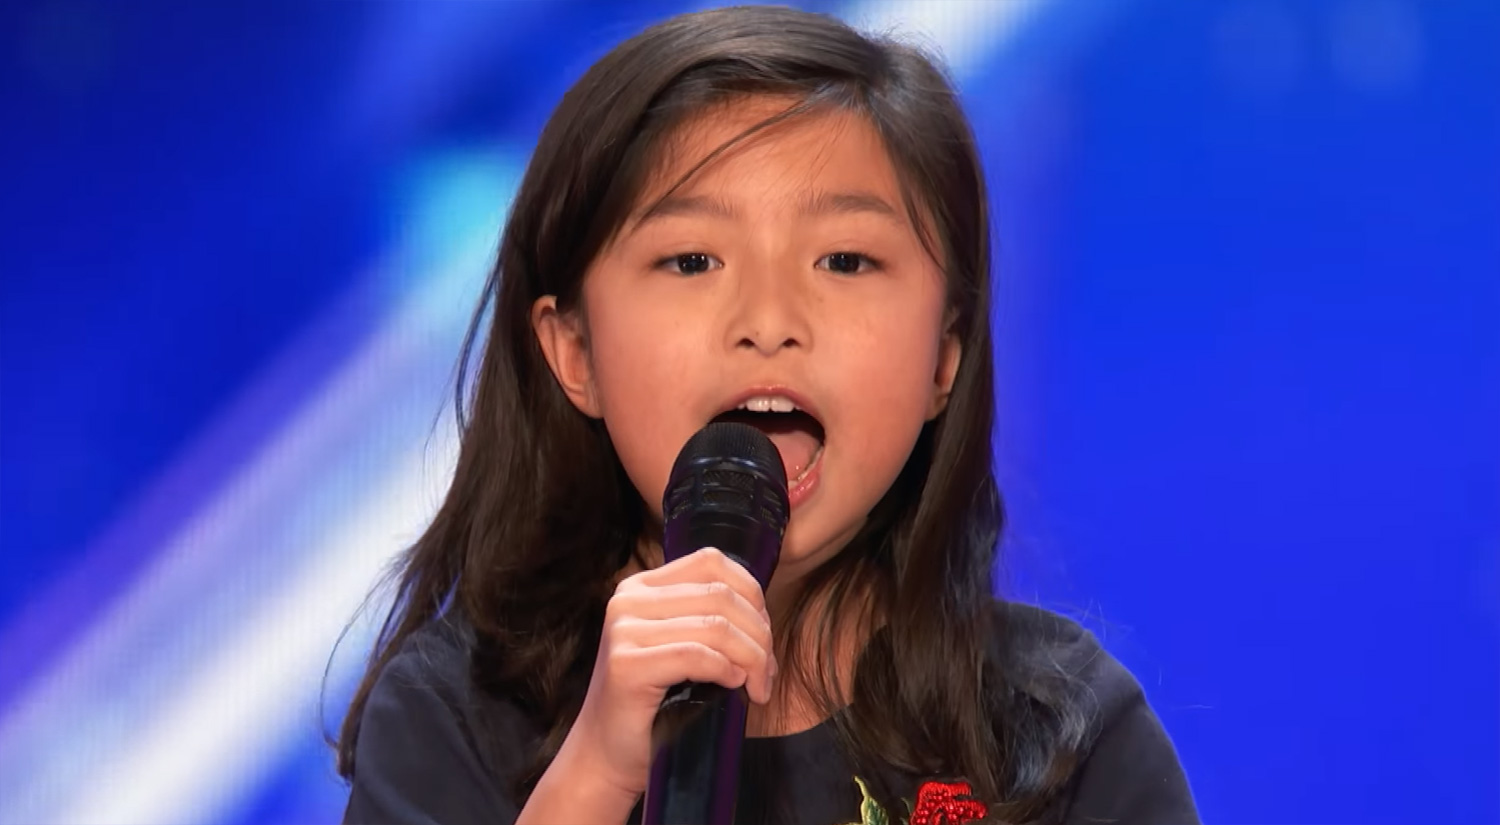 Americas got talent 2017 celine - Celine Tam 9 Wows With My Heart Will Go On During Agt Audition Watch Now America S Got Talent Celine Tam Just Jared Jr